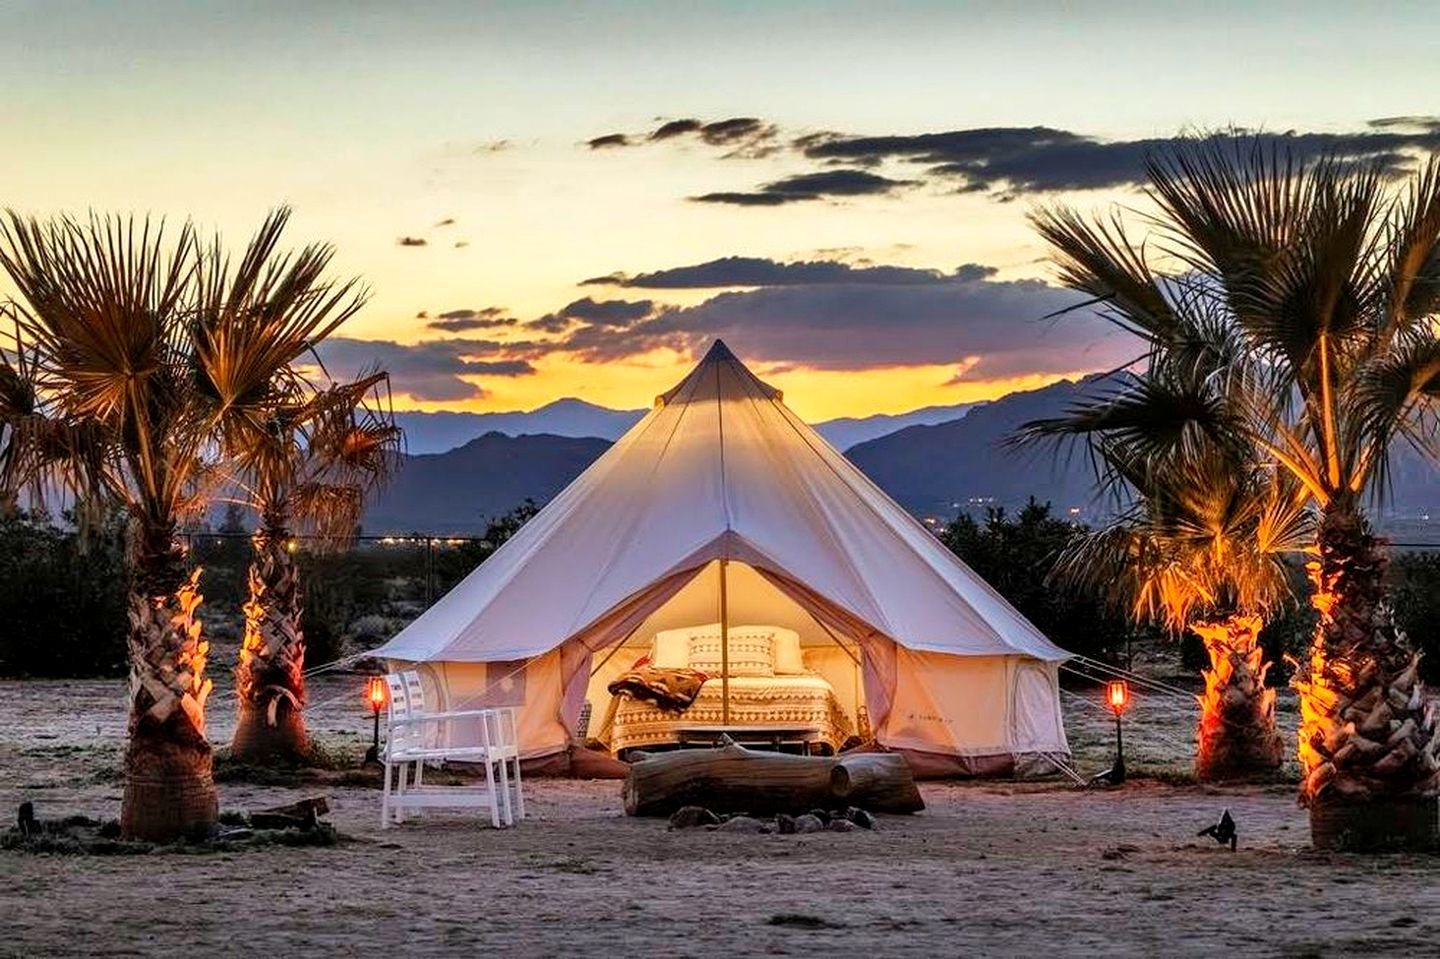 You Don't Need To Camp To Enjoy California's Nature, Try These Glamping Sites